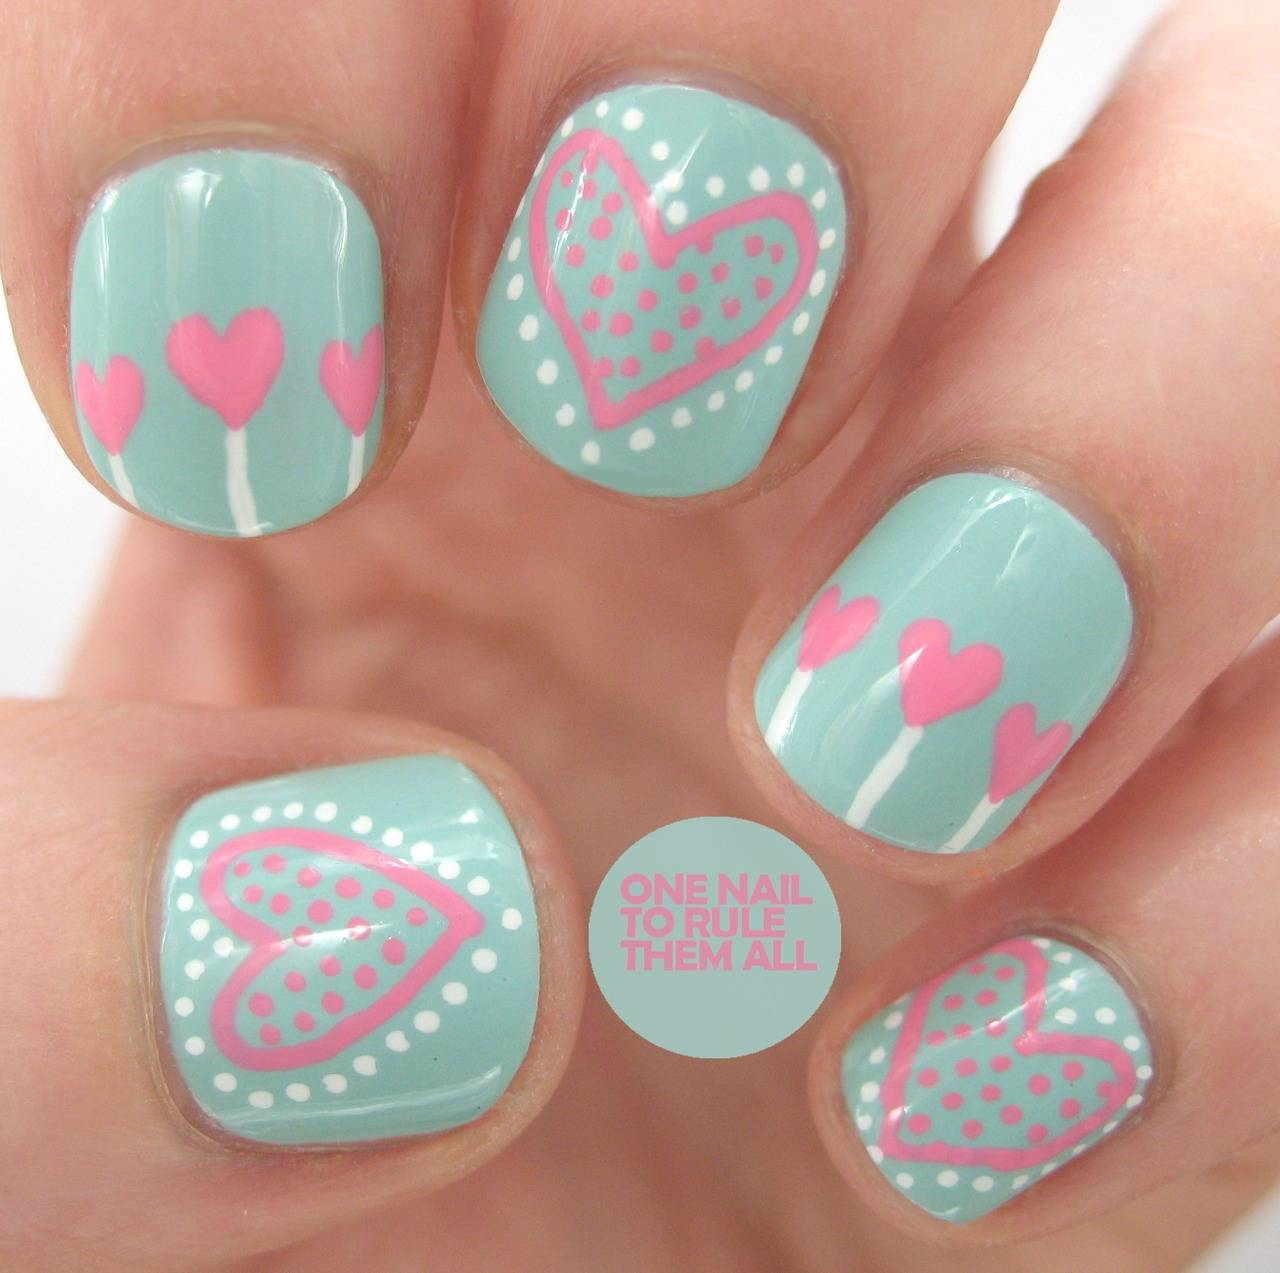 Green Nails With Pink Hearts And Dots Design Nail Art - Image Source. 1000 Images About Valentines Day Nail Art Designs On